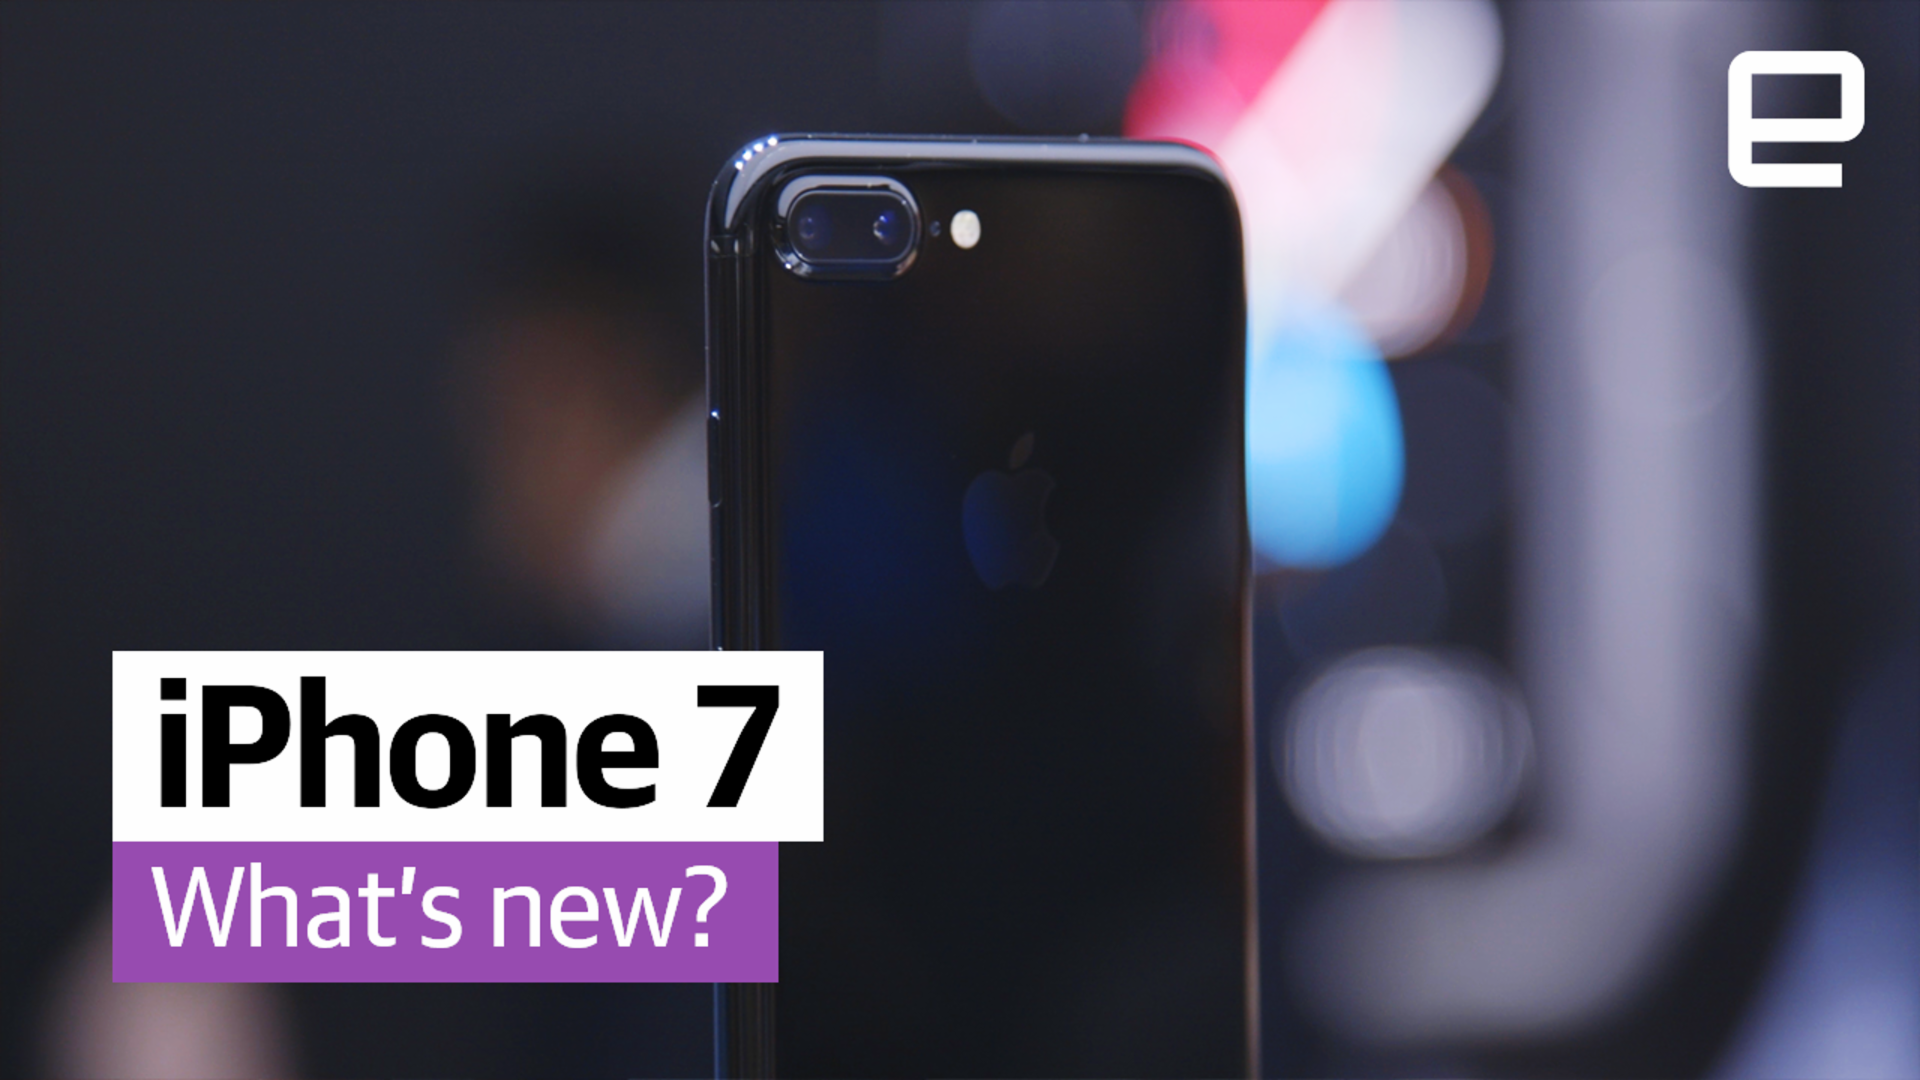 What happened at the iPhone event